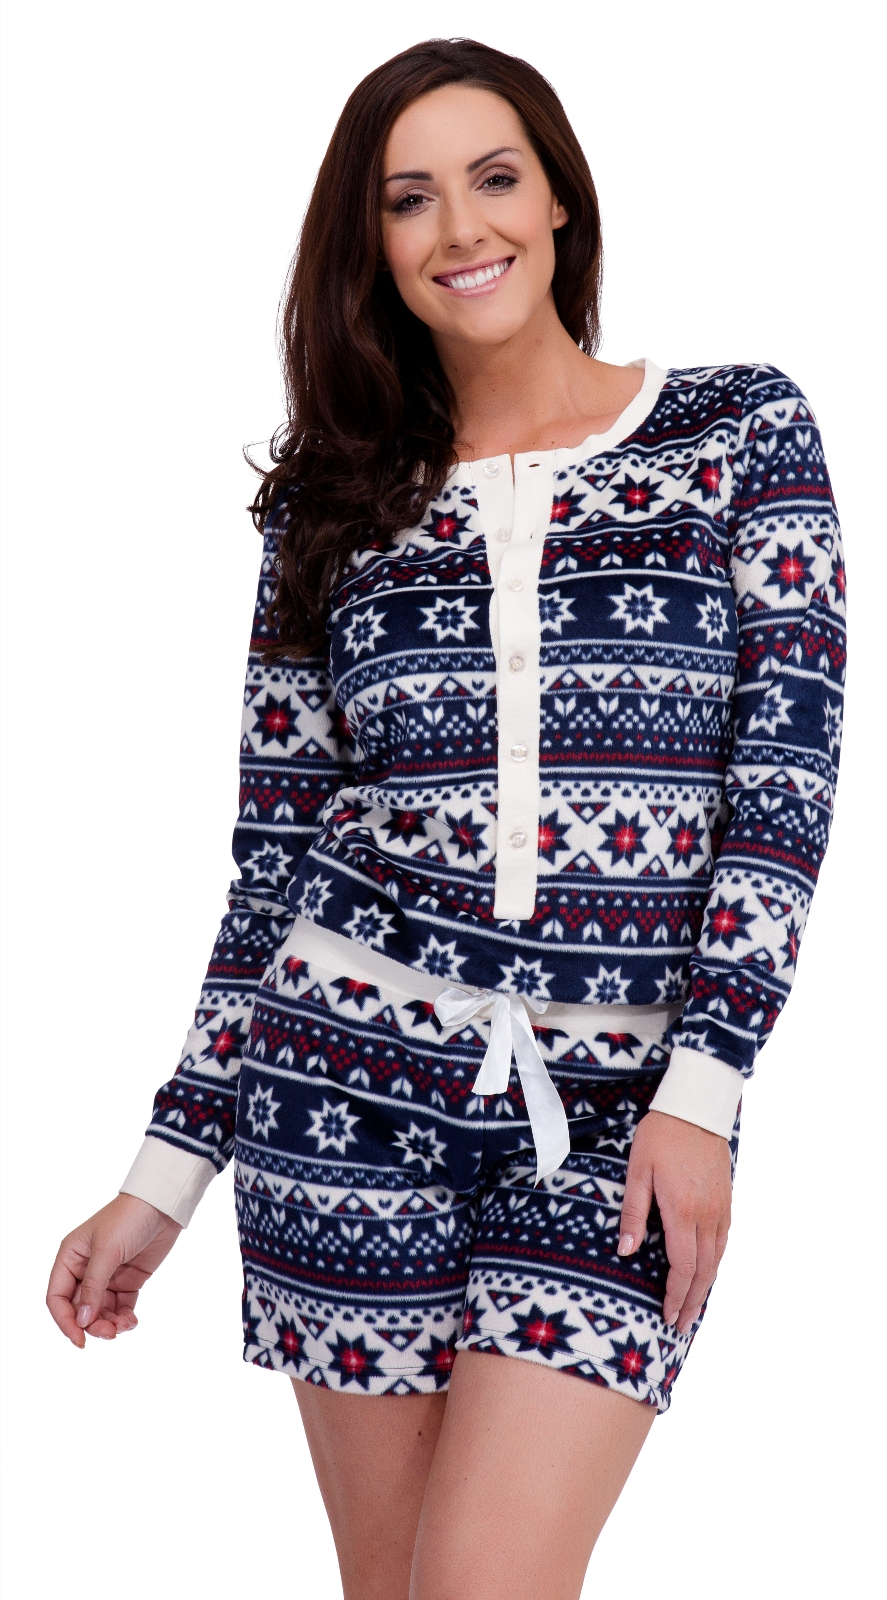 womens fairisle fleece playsuit short all in one pyjamas. Black Bedroom Furniture Sets. Home Design Ideas